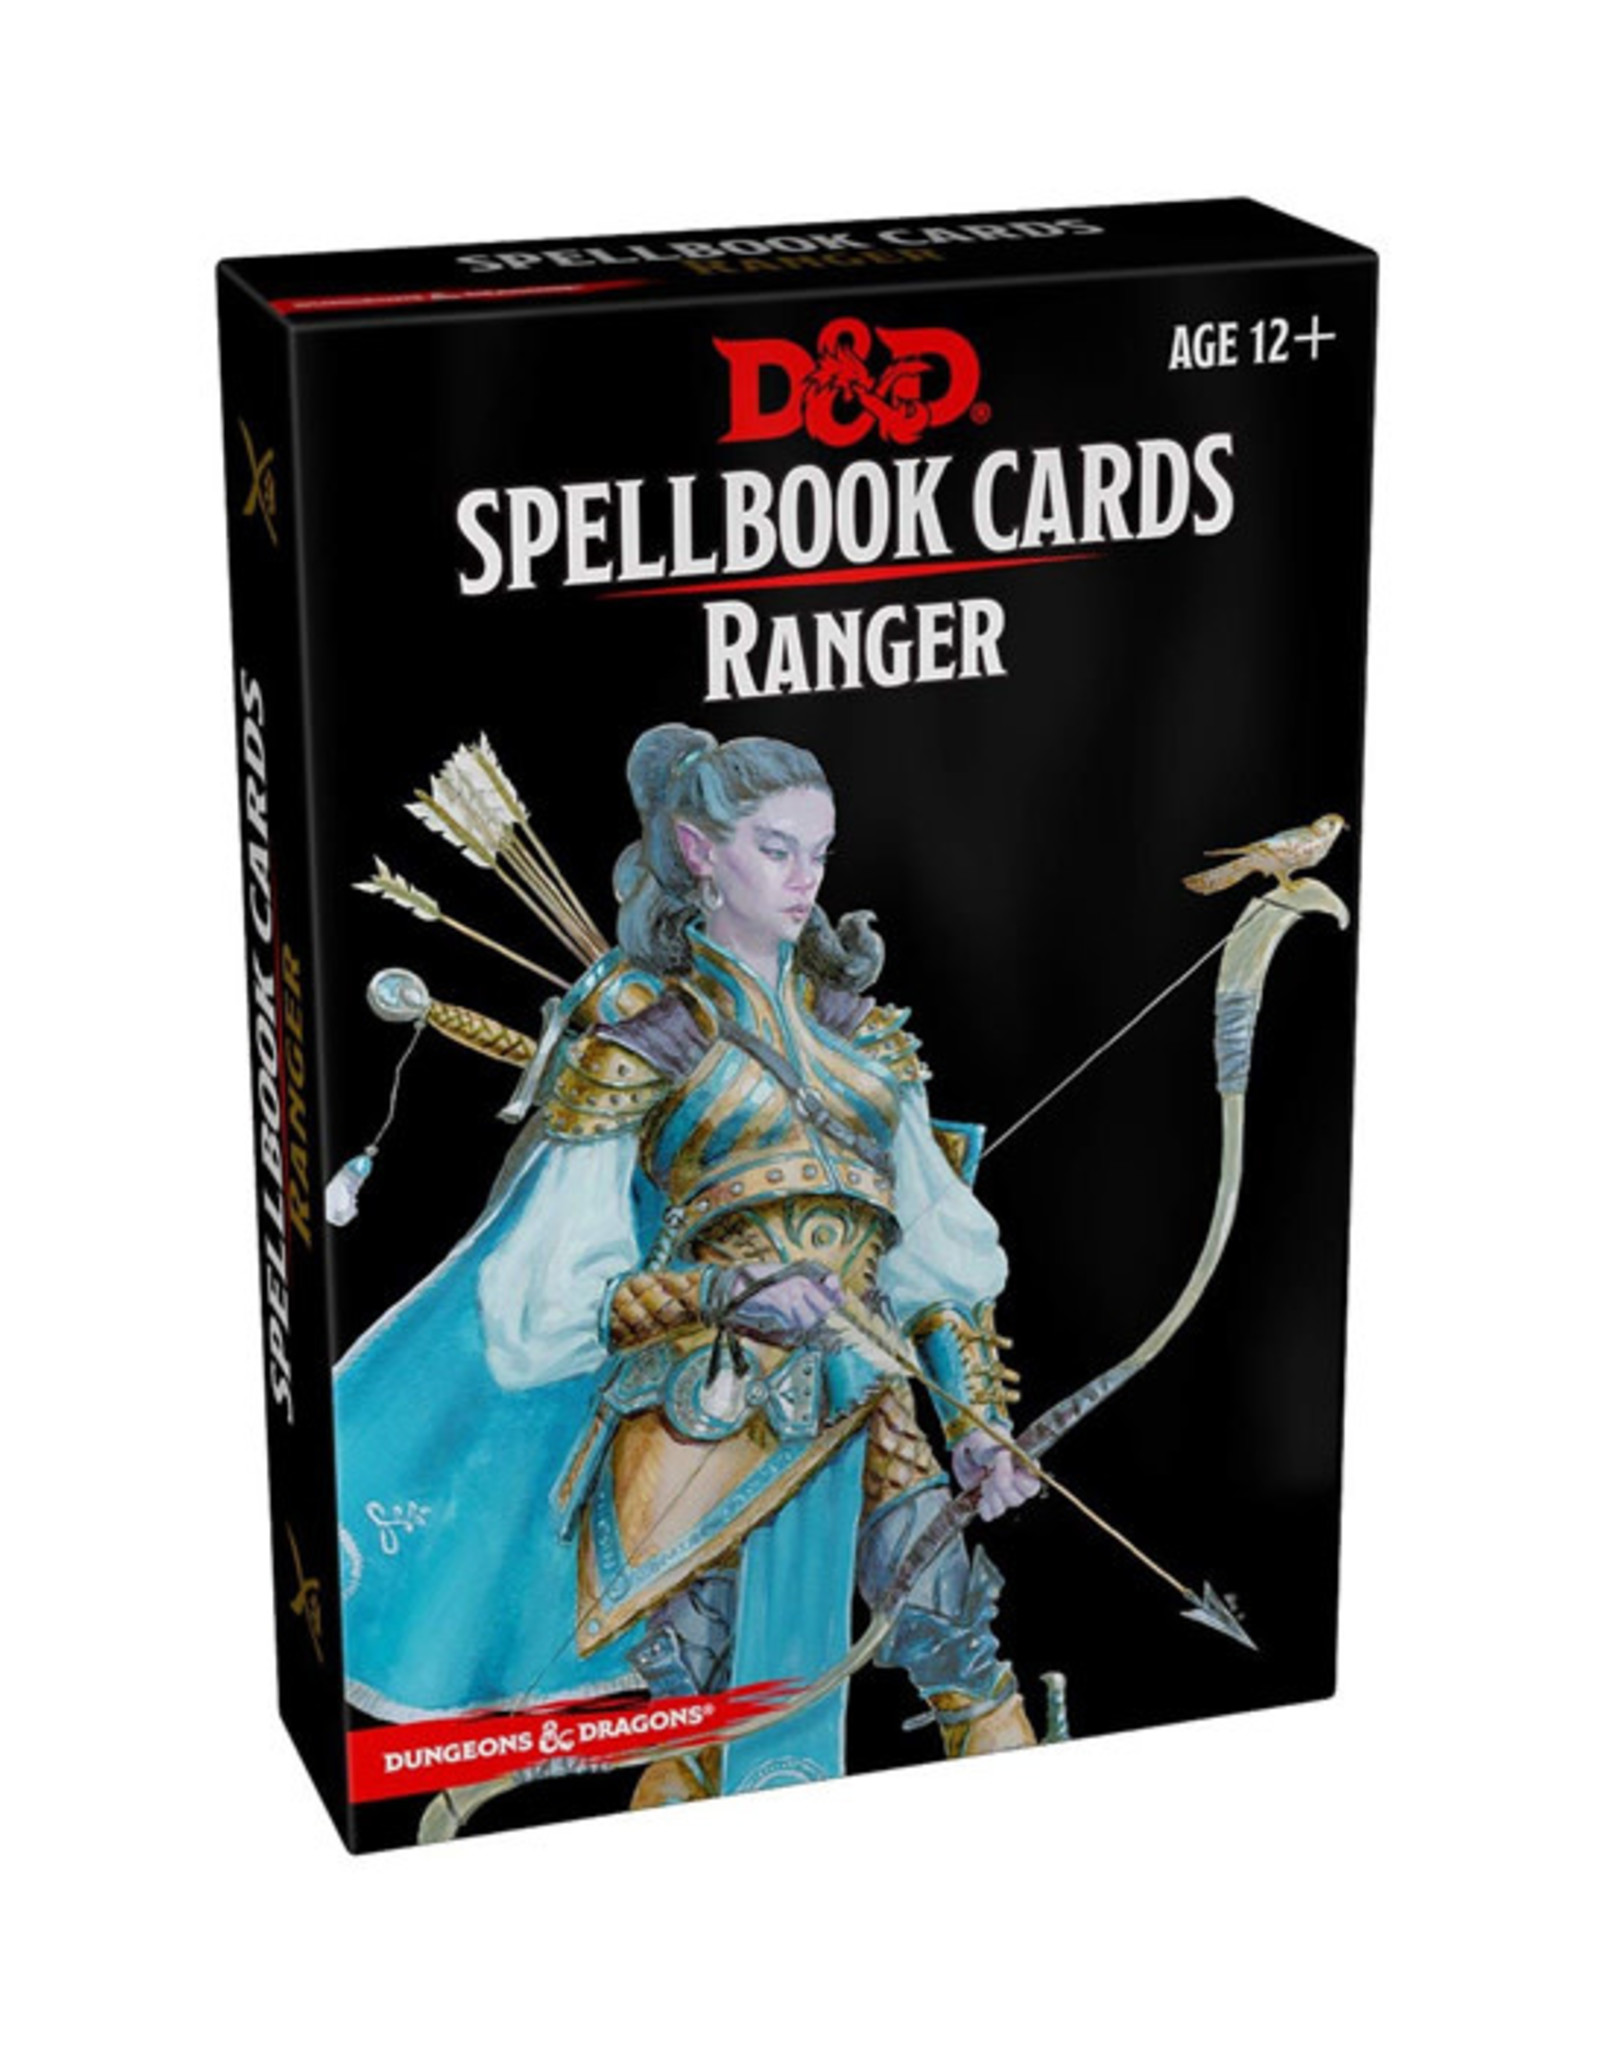 Dungeons & Dragons Dungeons & Dragons: 5th Edition - Spellbook Cards - Ranger